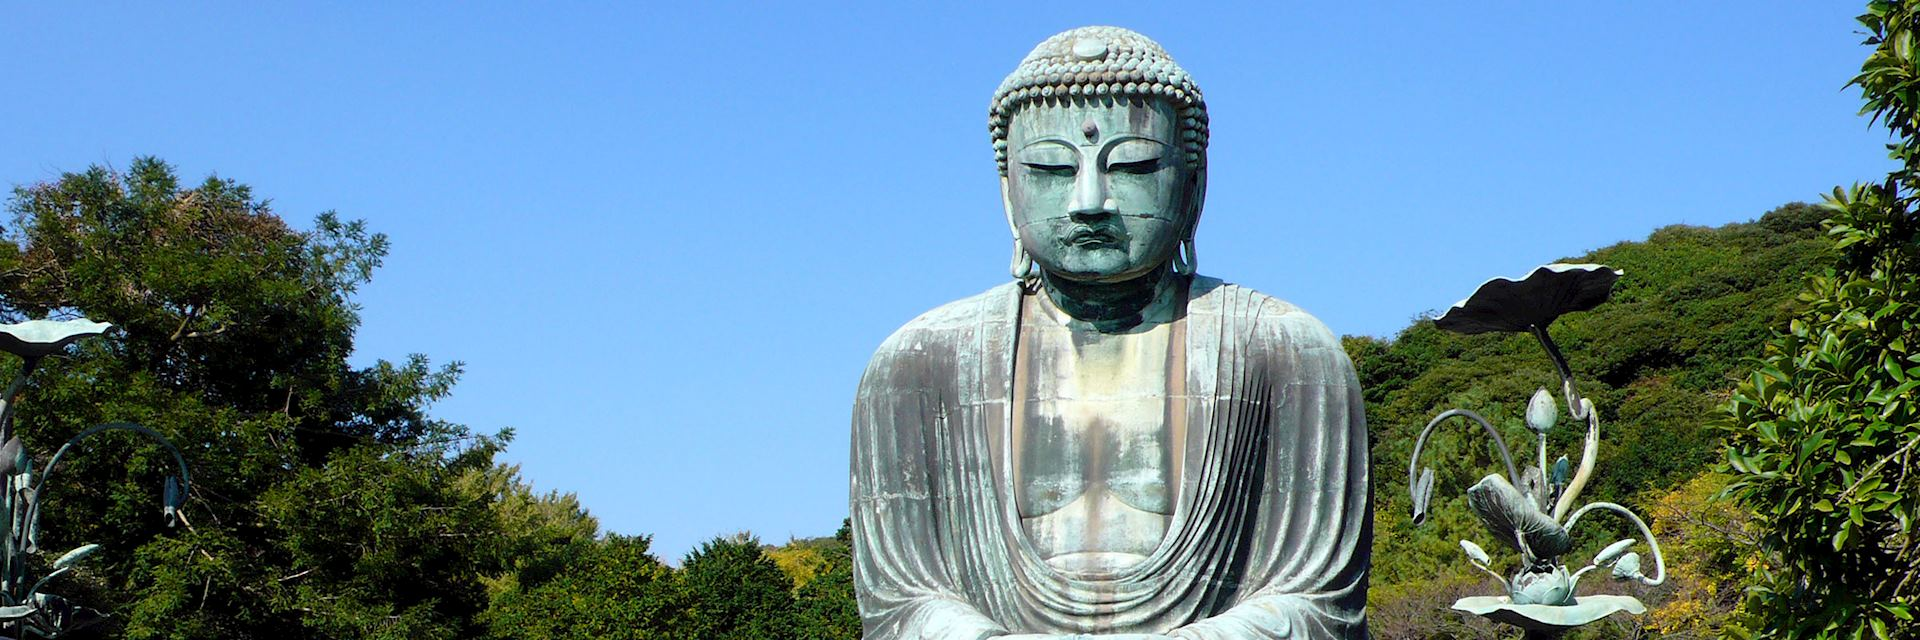 Great Bronze Buddha, Kamakura